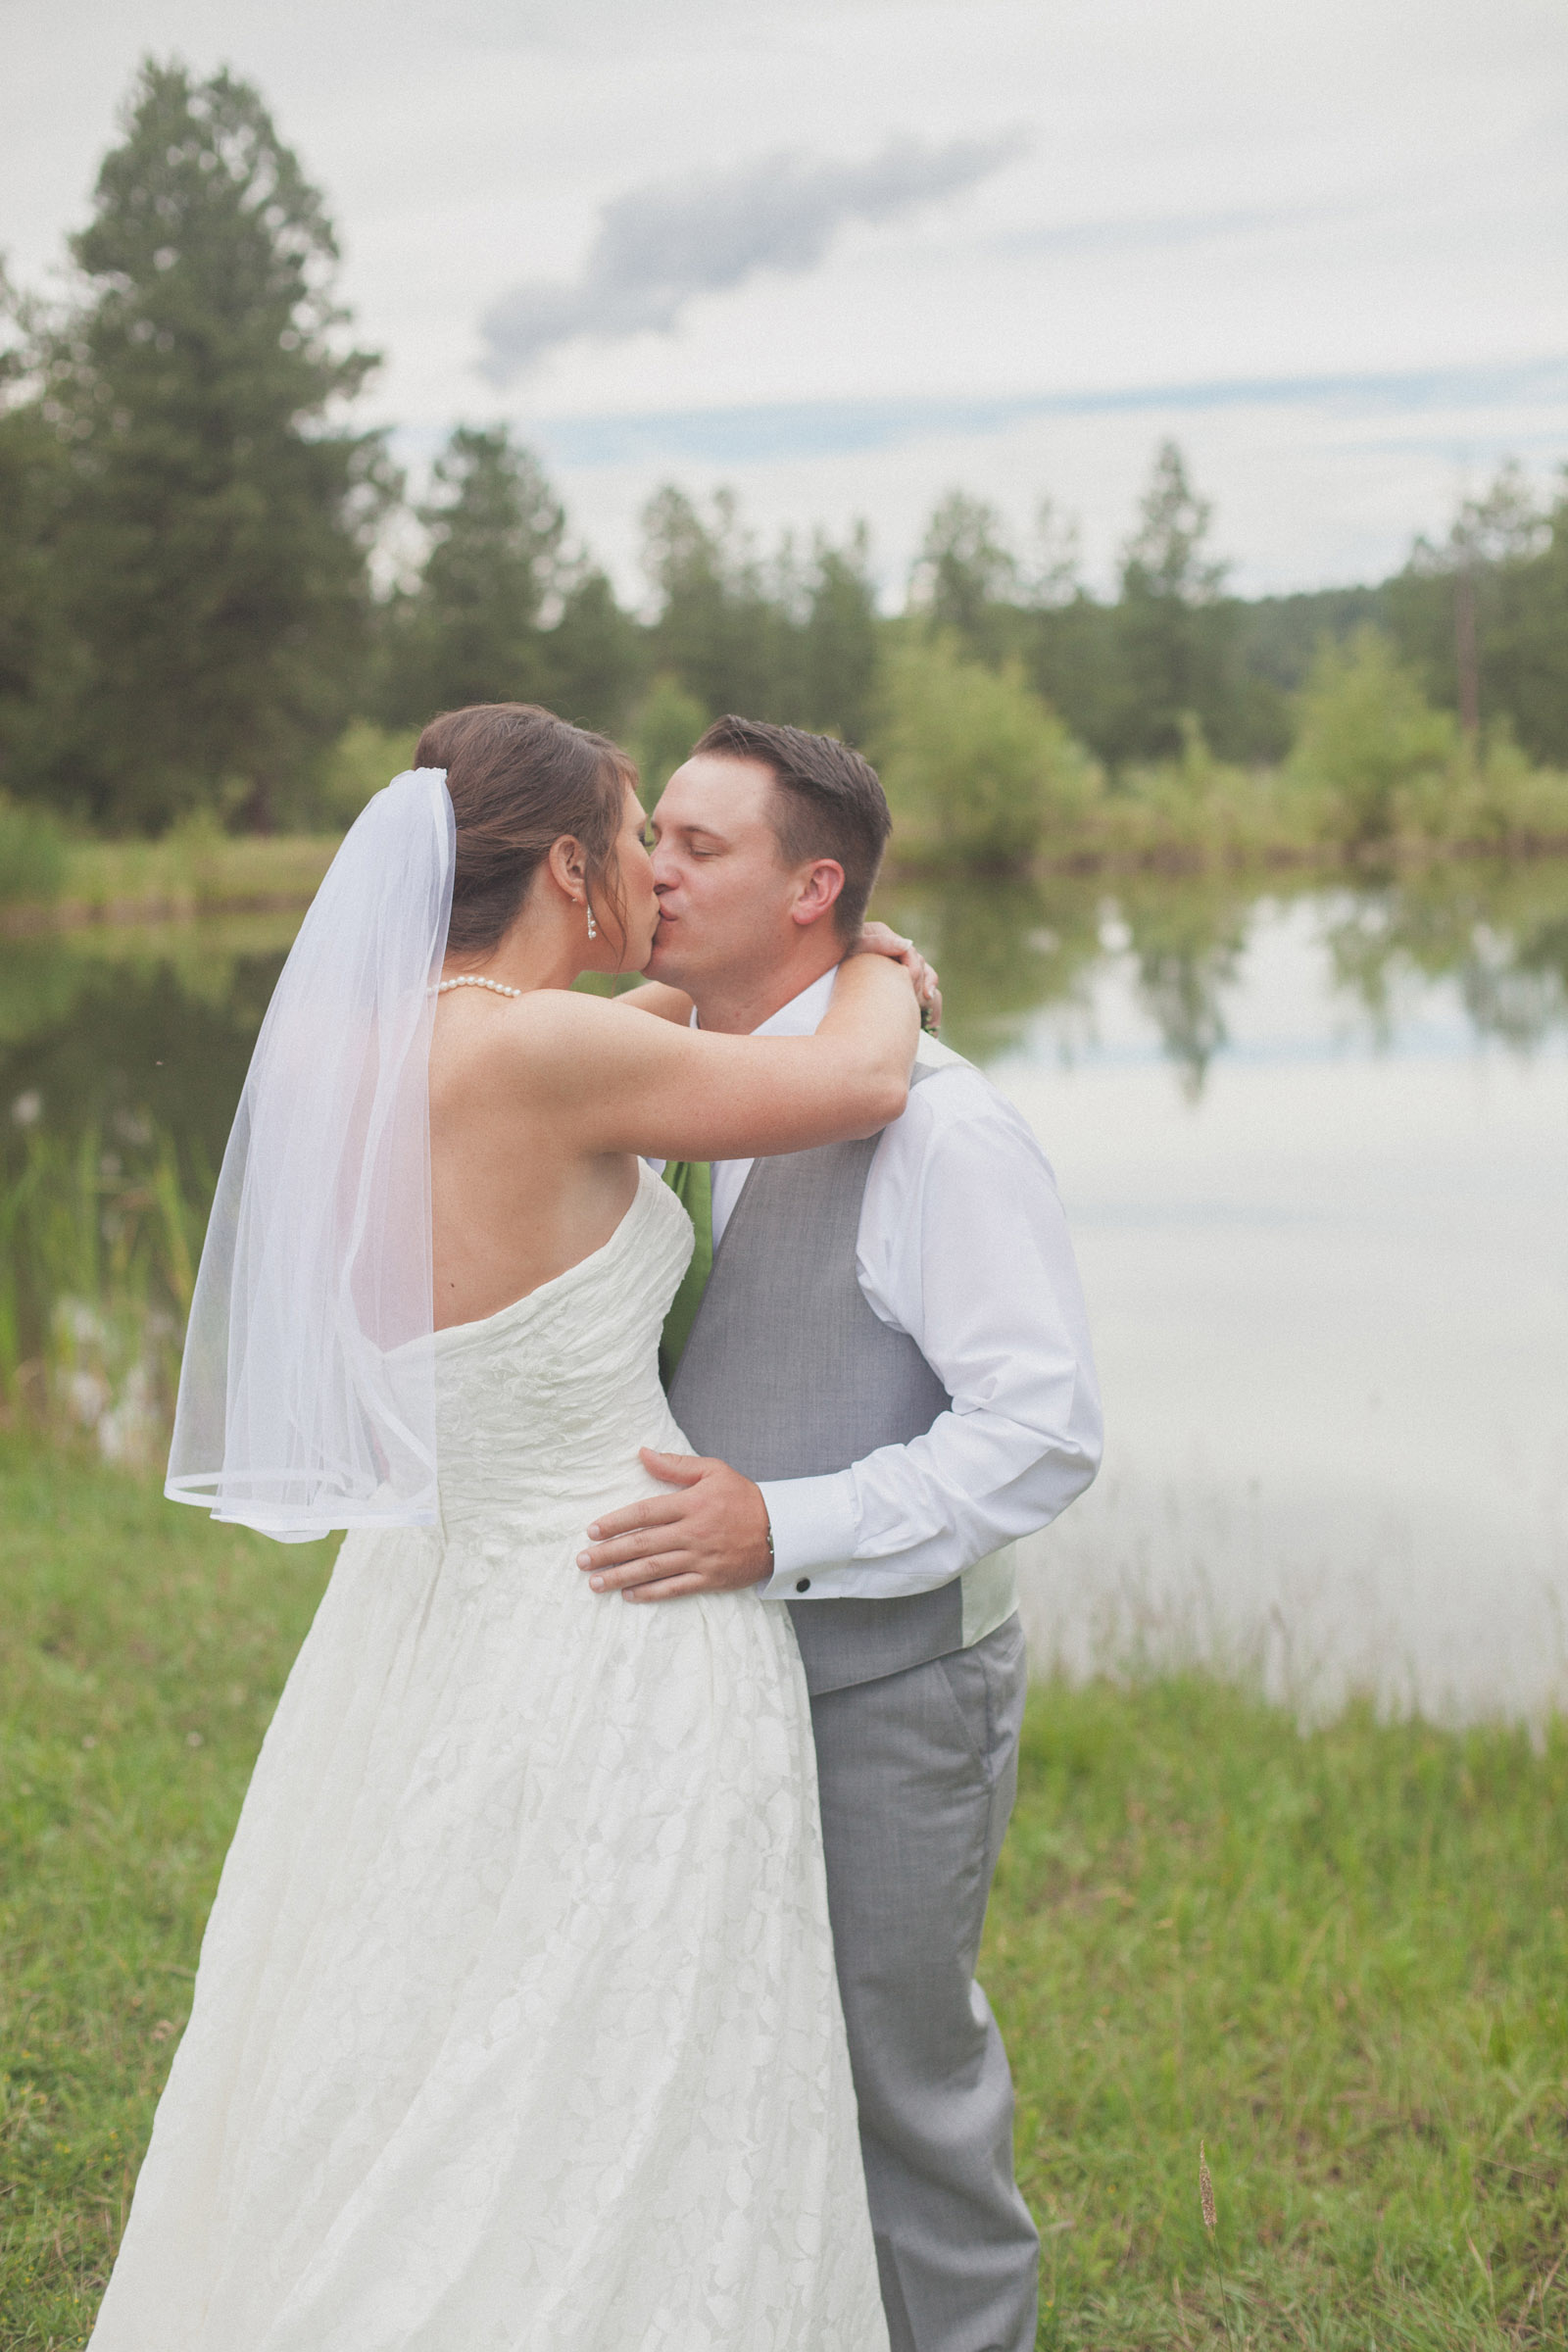 068-groom-bride-wedding-cabin-woods-forest-pictures-photos-dress-photography-portraits-first-look-firstlook-reveal-happy-farmington-aztec-durango-mancos-co-nm